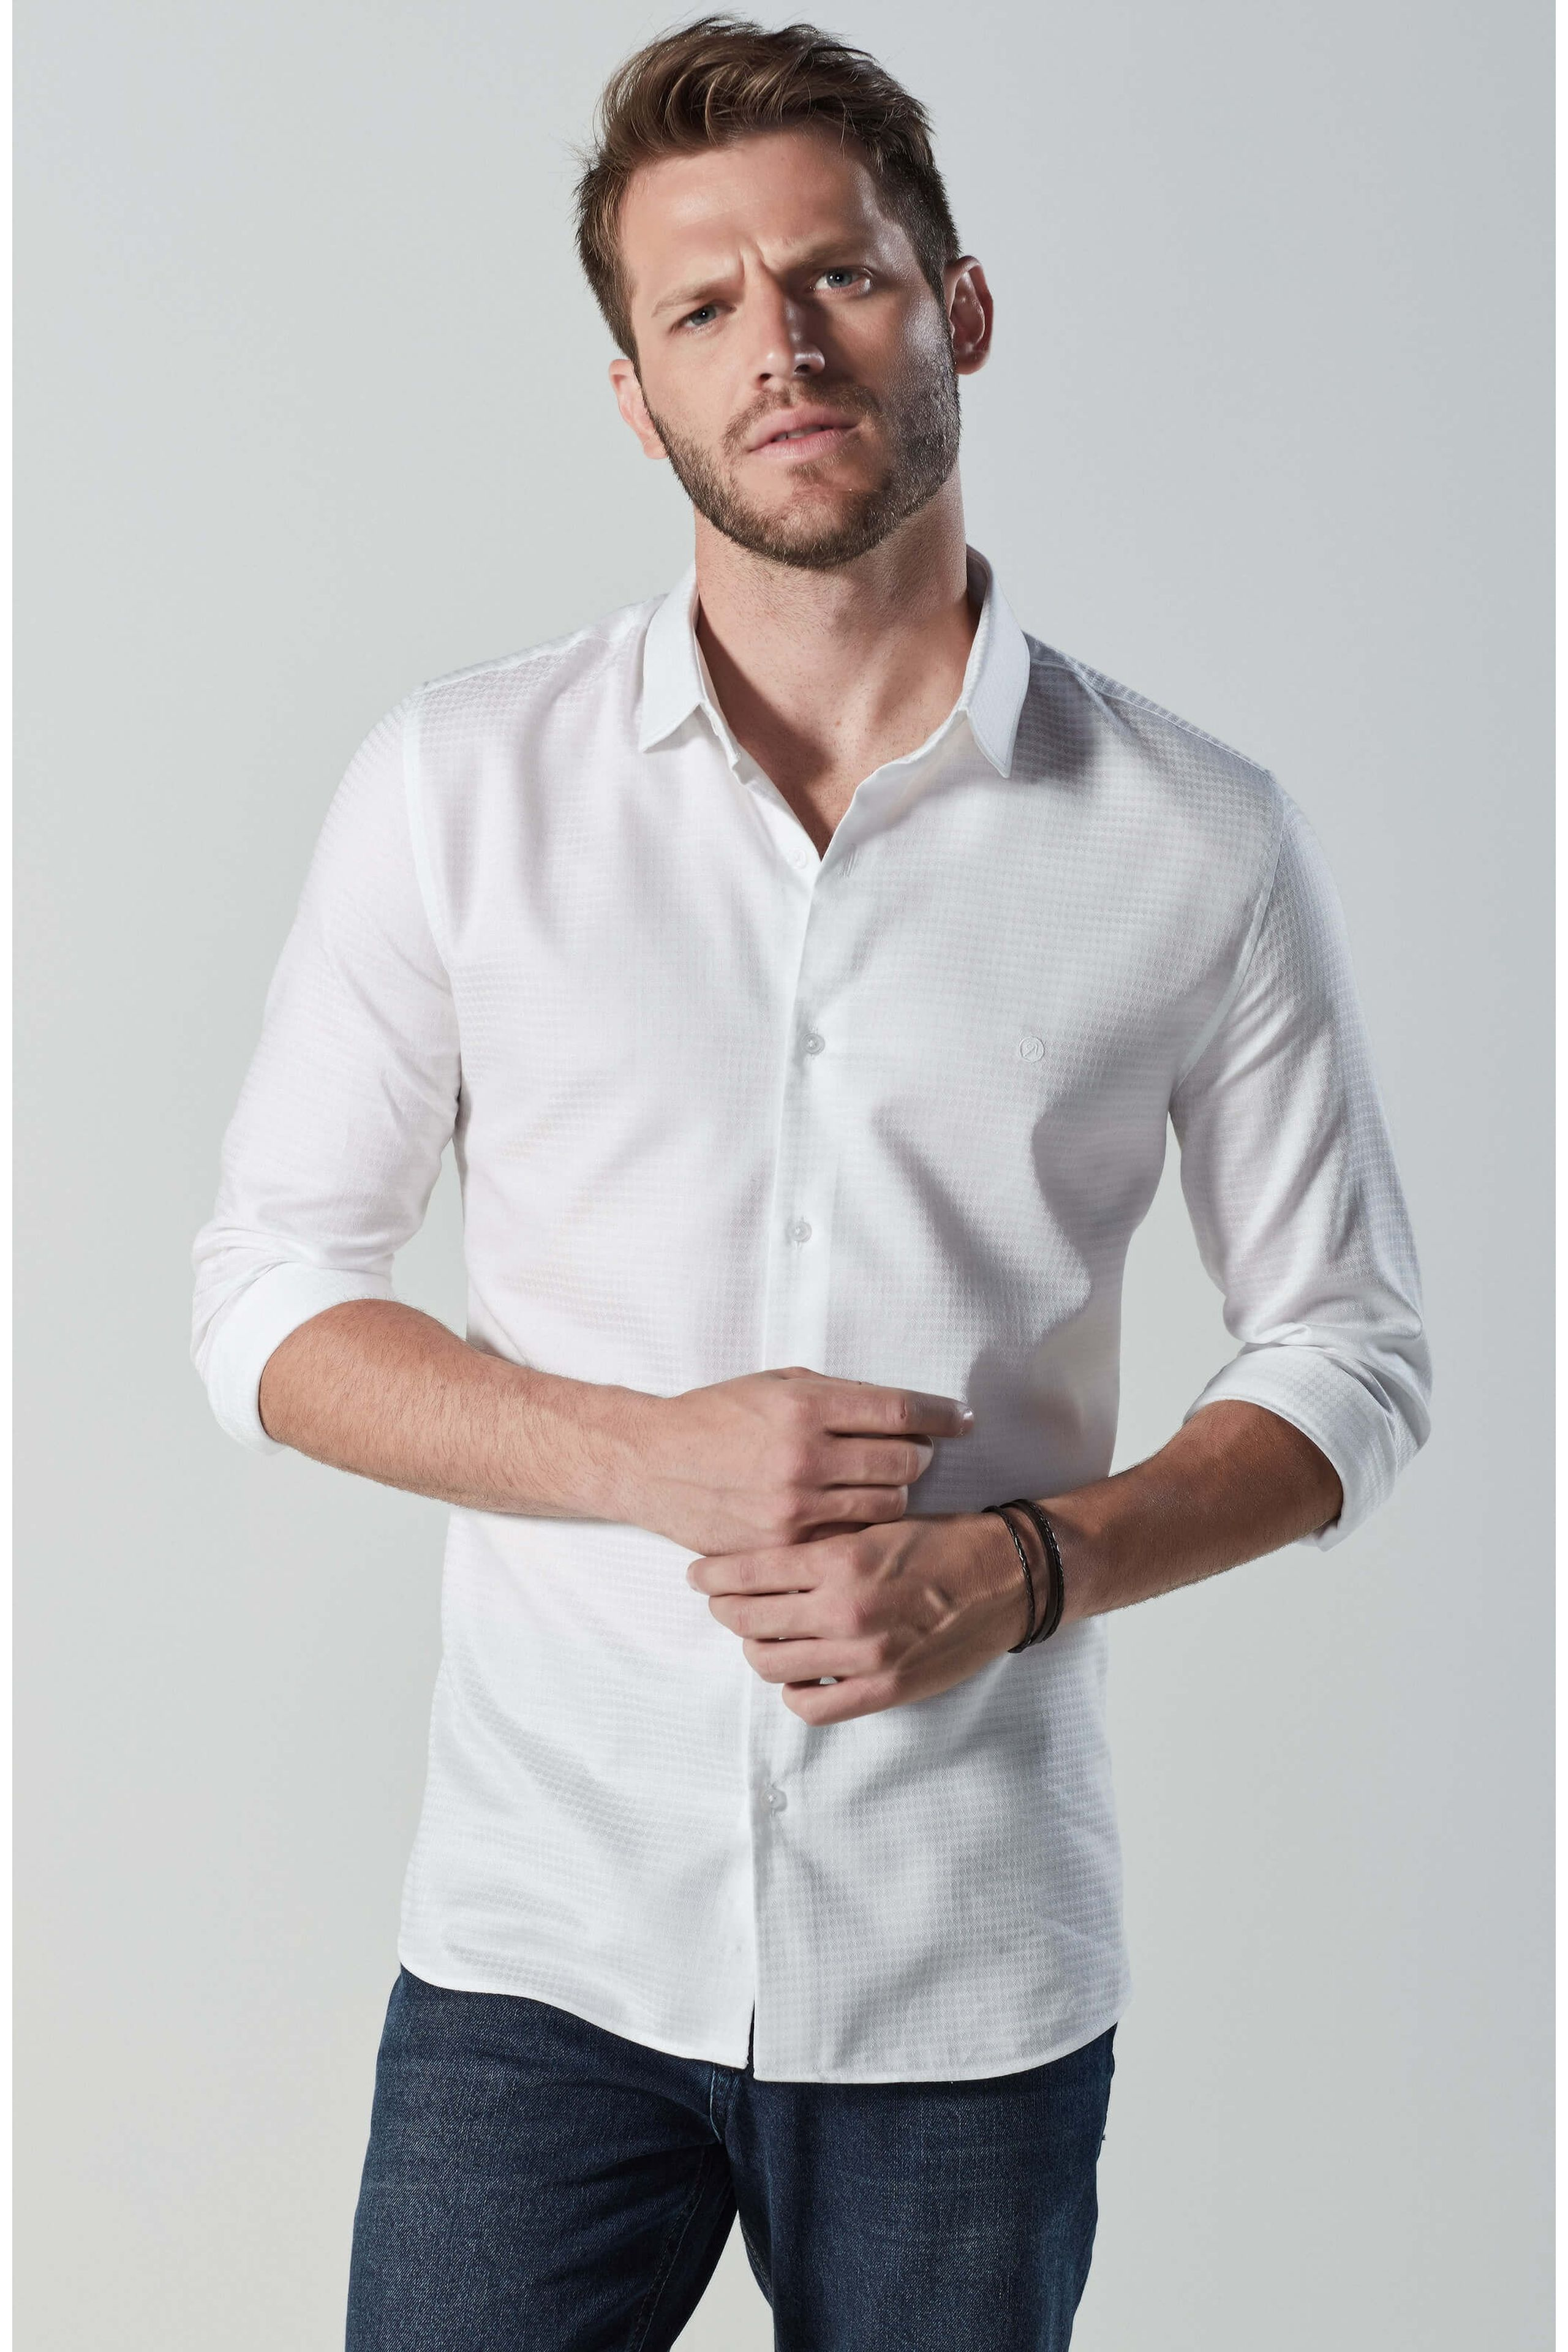 2601GWZ41699_900_1-CAMISA-WORK-SLIM-FIT-ML-MAQUINETADA